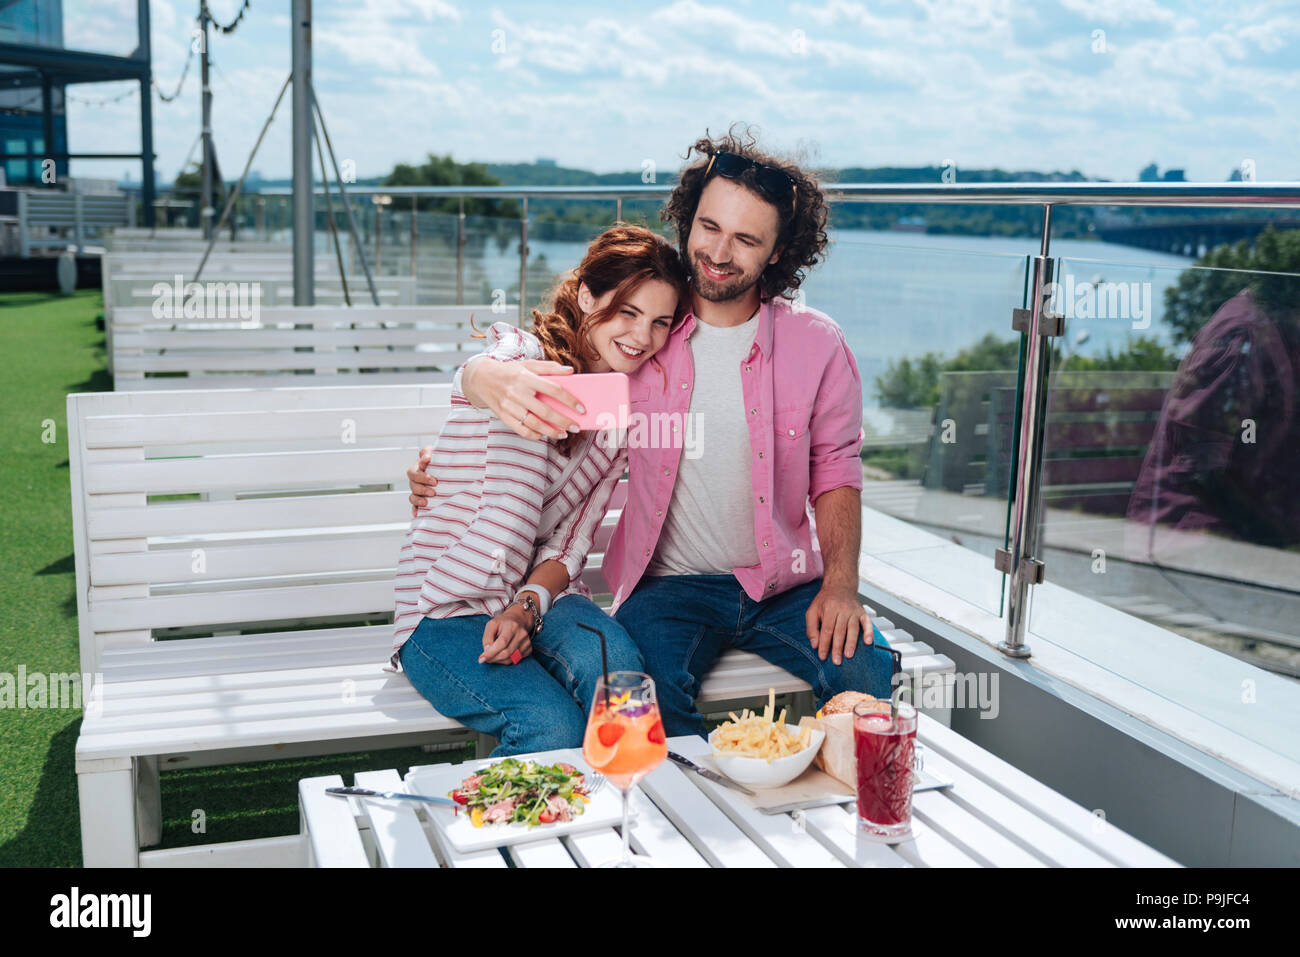 Beaming woman making selfie with her boyfriend - Stock Image